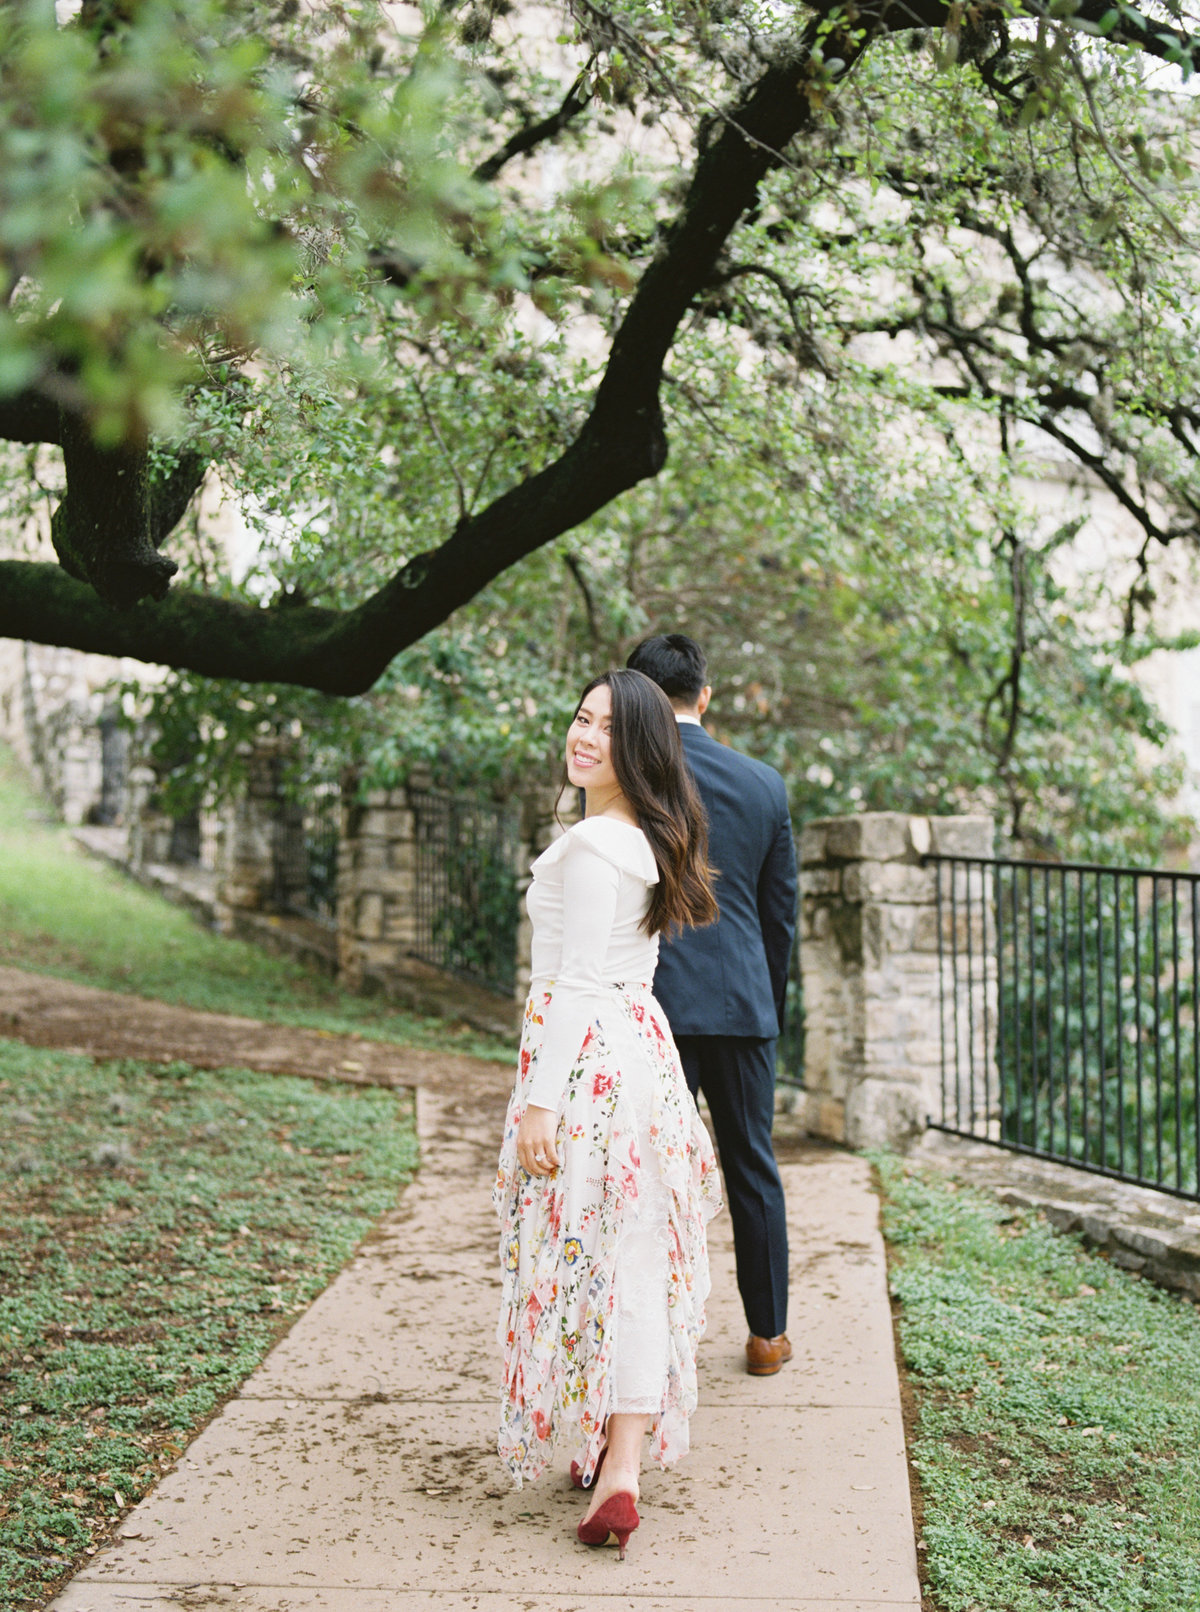 Couple walking down the street holding hands - engagement photos